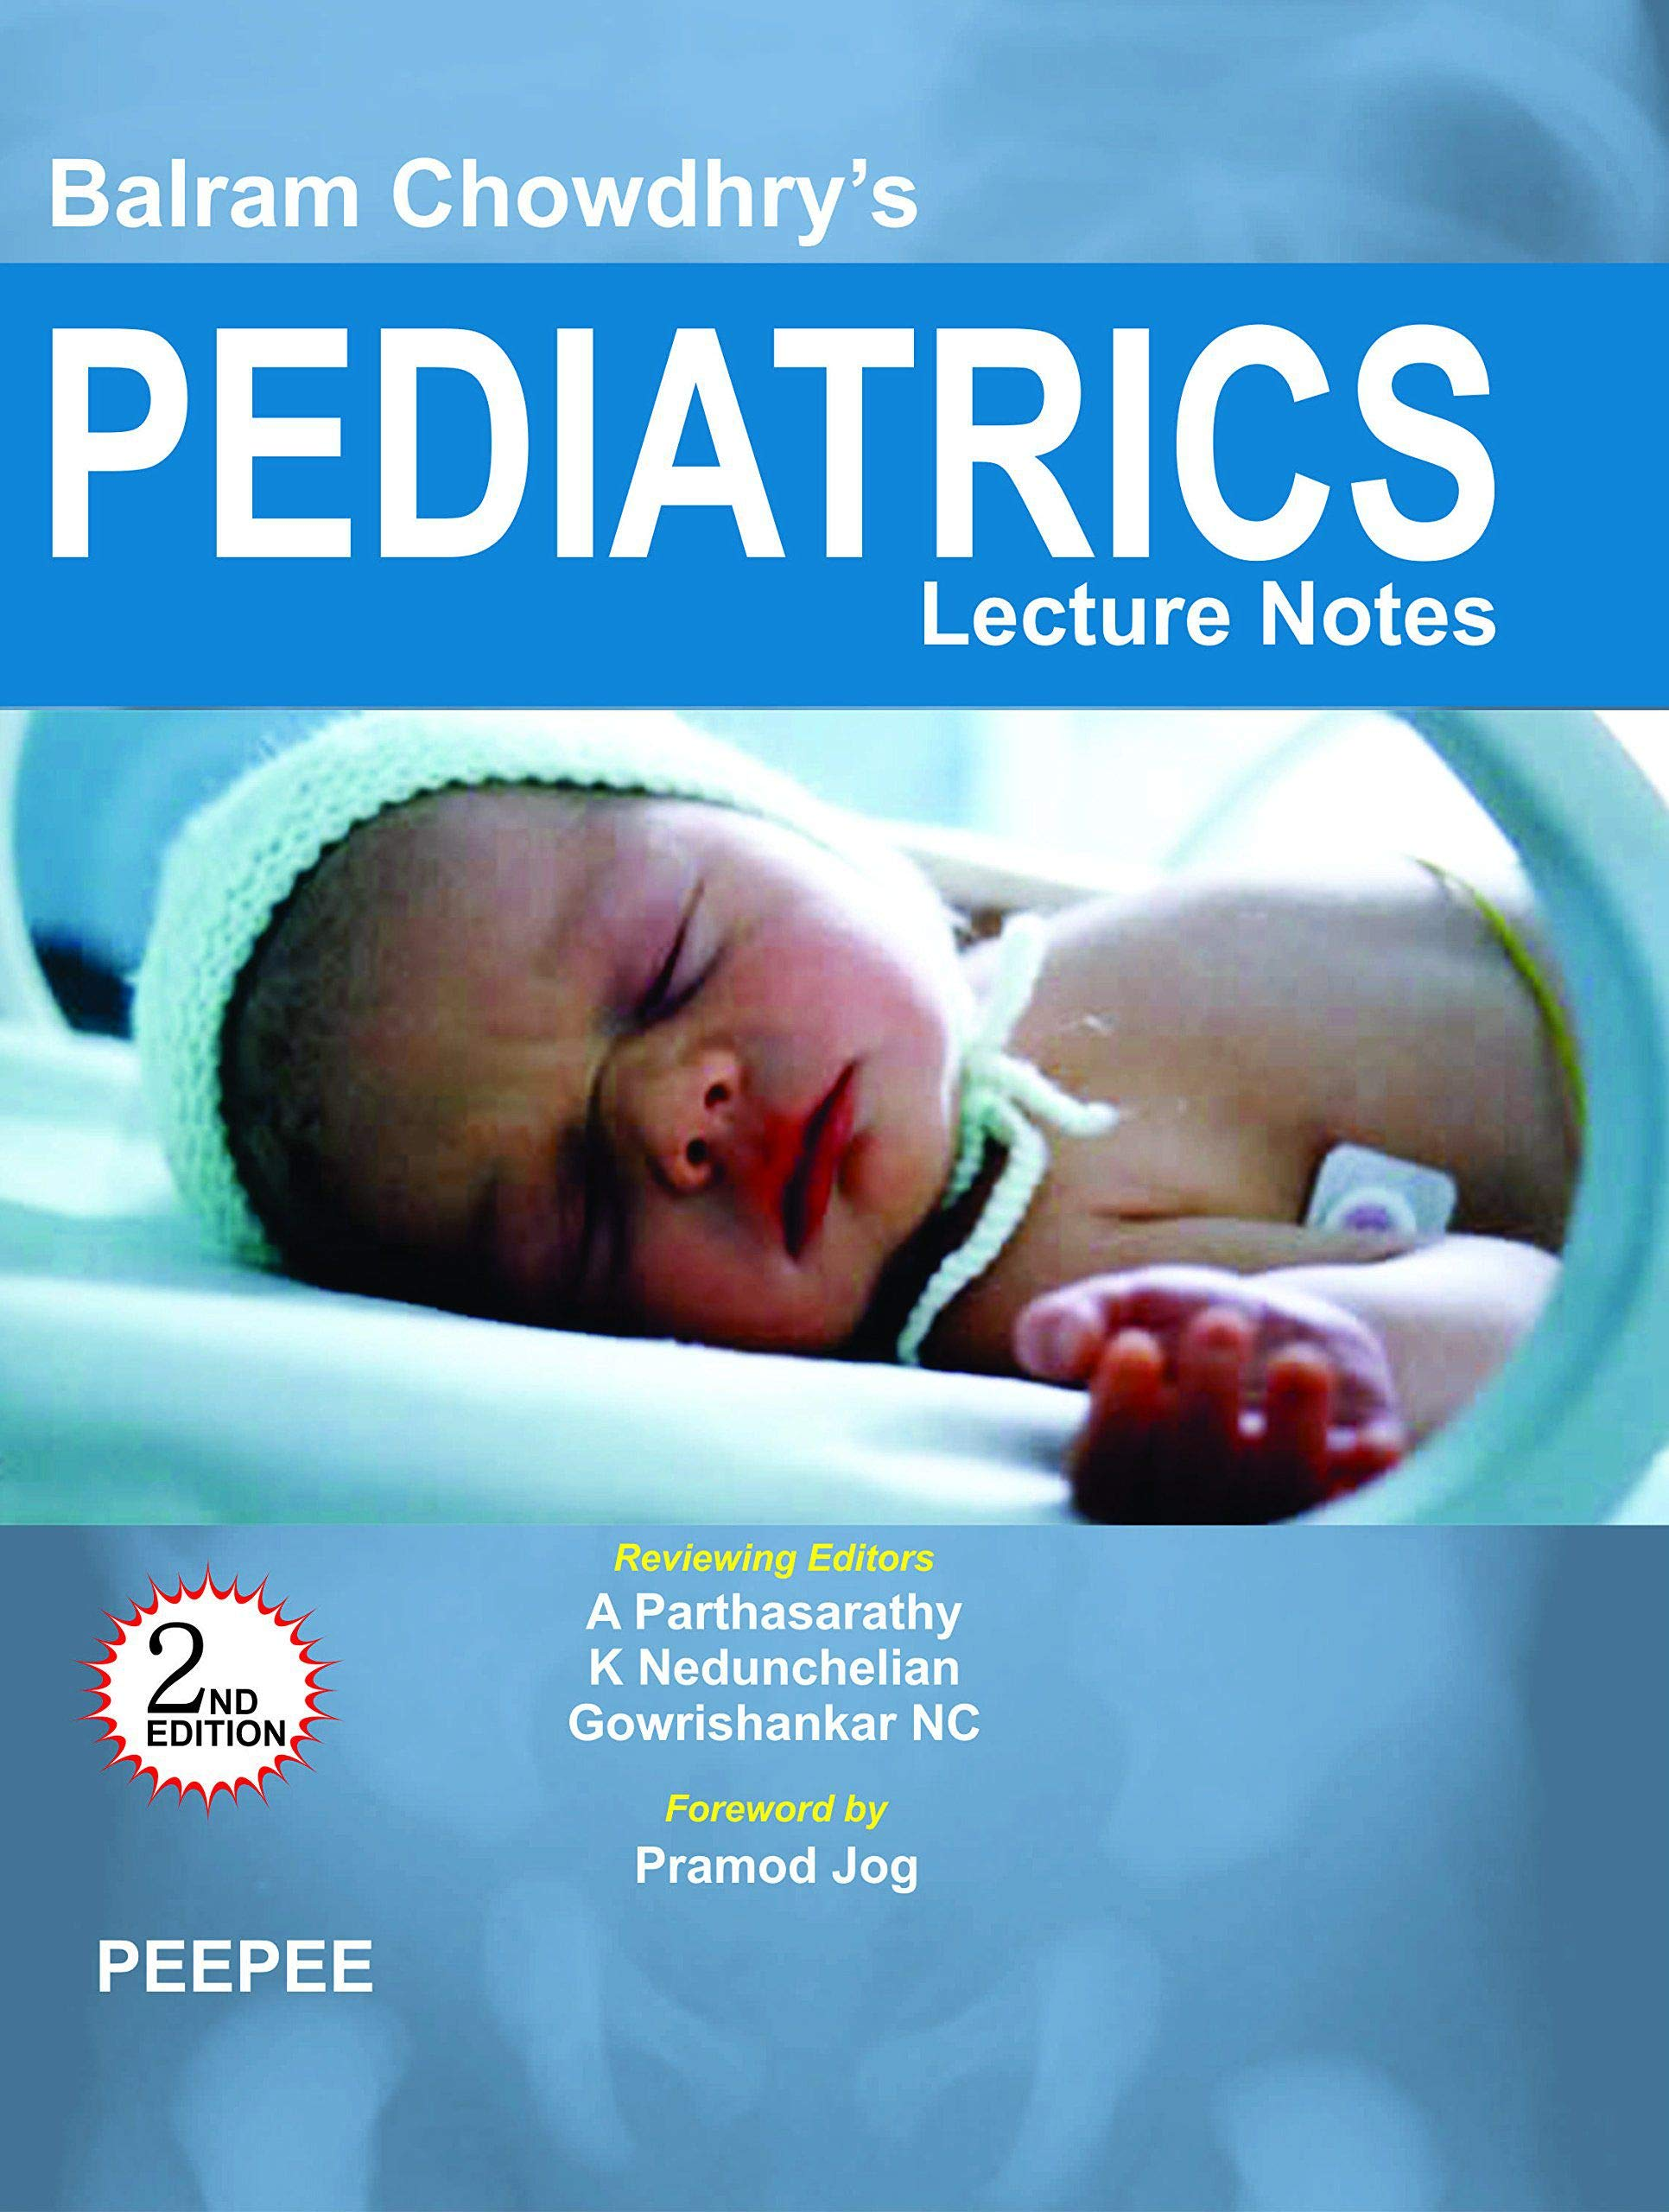 BALRAM CHOWDHRY' S PEDIATRICS LECTURE NOTES 2nd Edition ebook